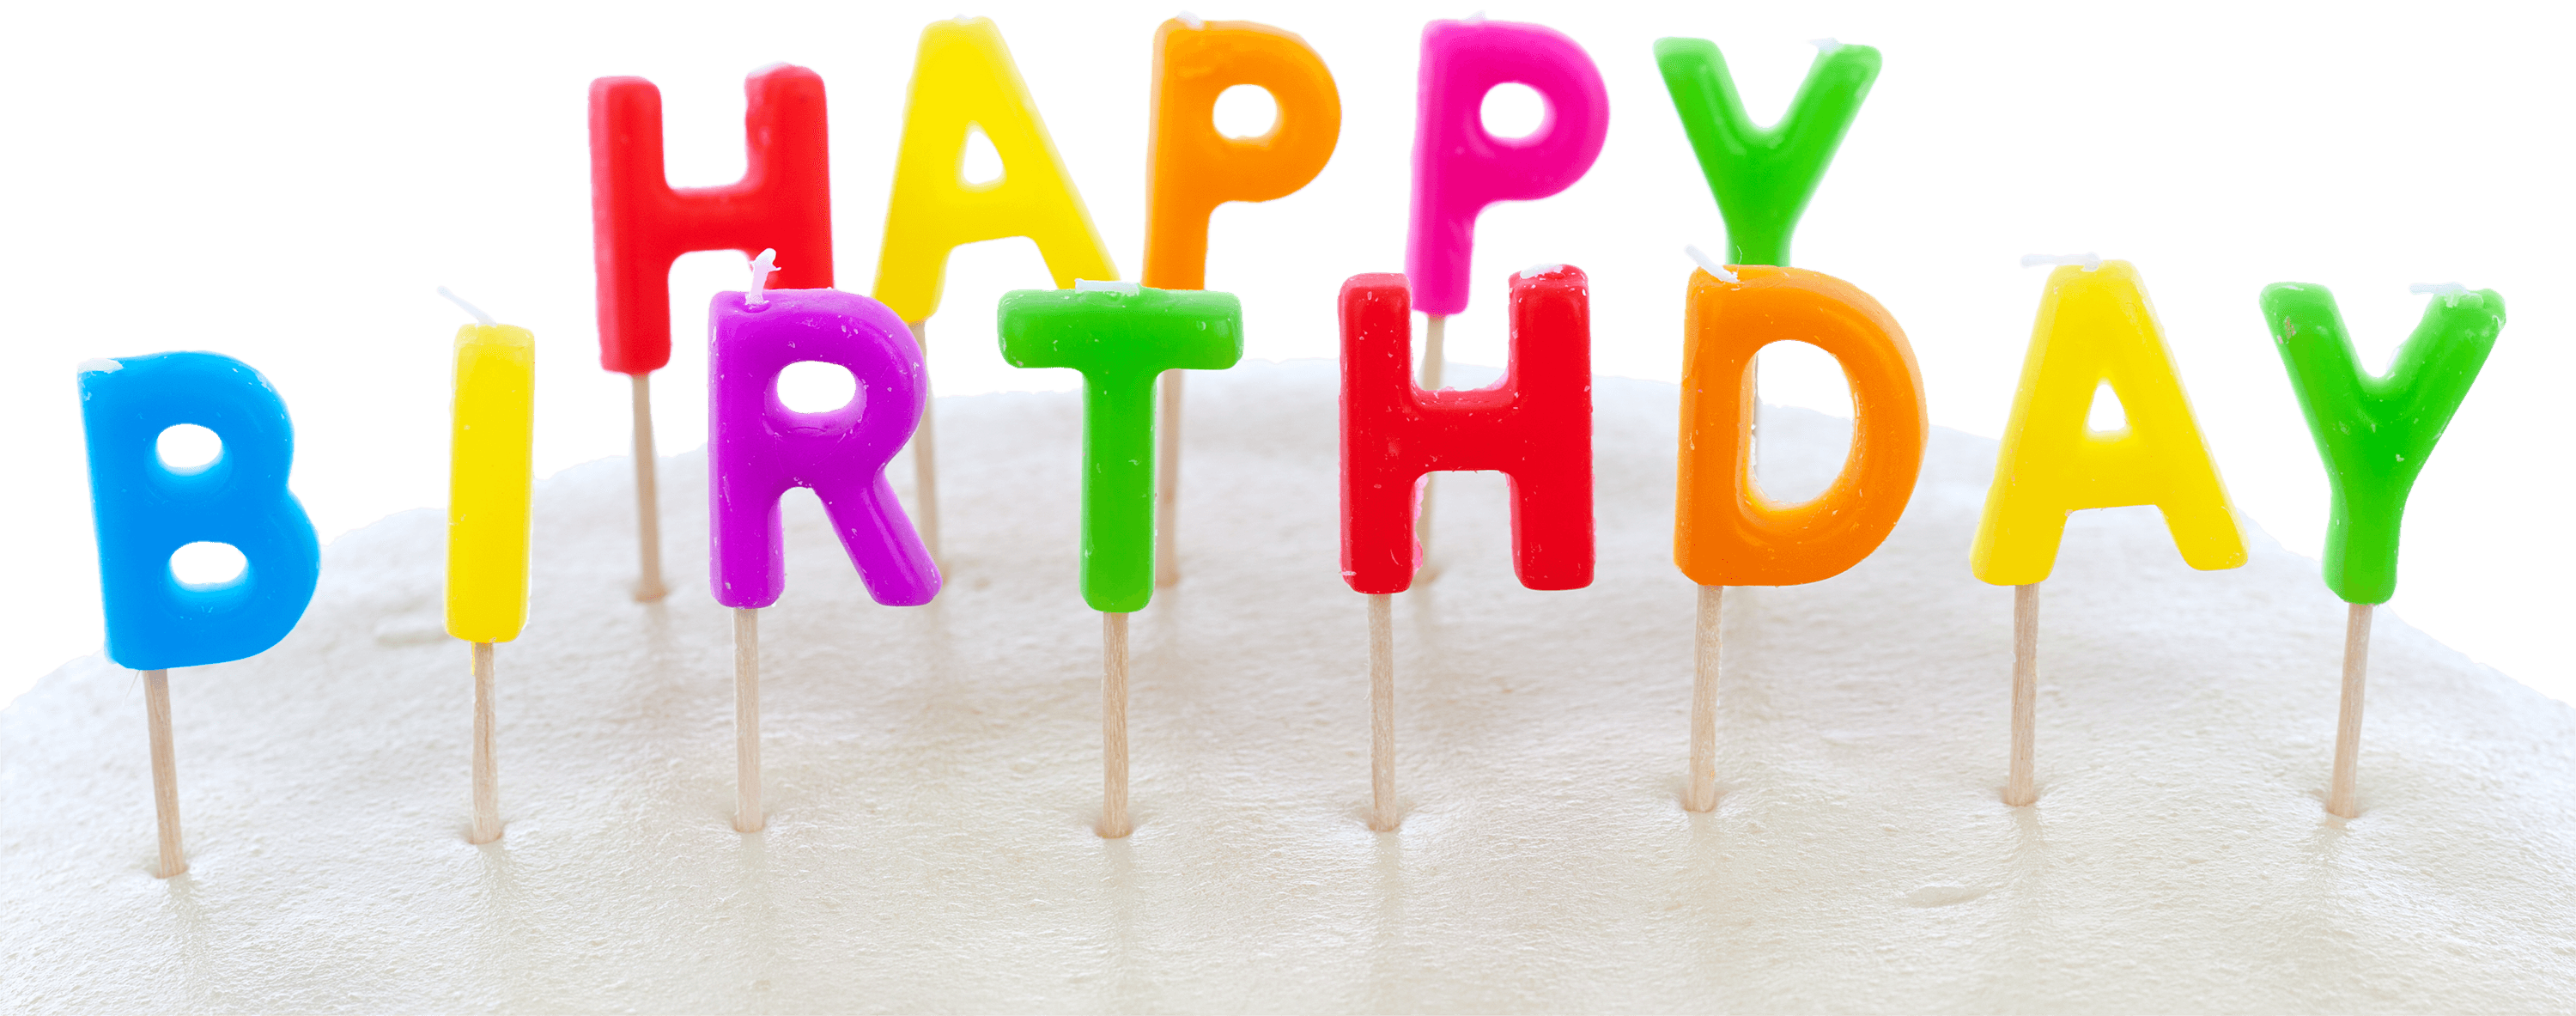 3000x1183 Happy Birthday Cake Surface Transparent Png